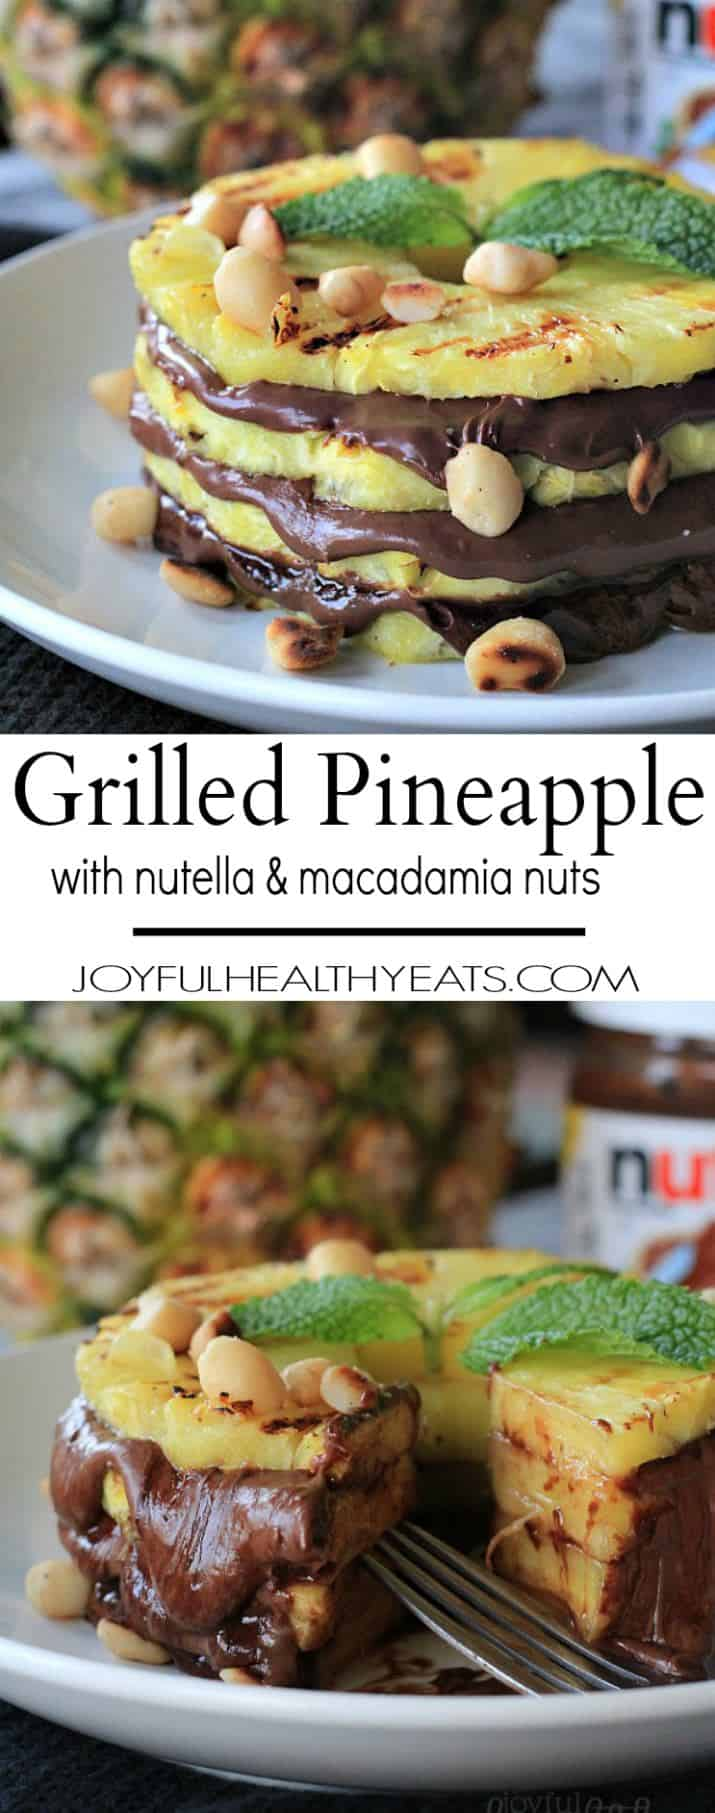 Sweet Juicy Pineapple lightly grilled then topped with chocolate Nutella spread and garnished with toasted macadamia nuts - a unique and healthy dessert recipe for summer! | joyfulhealthyeats.com #recipes